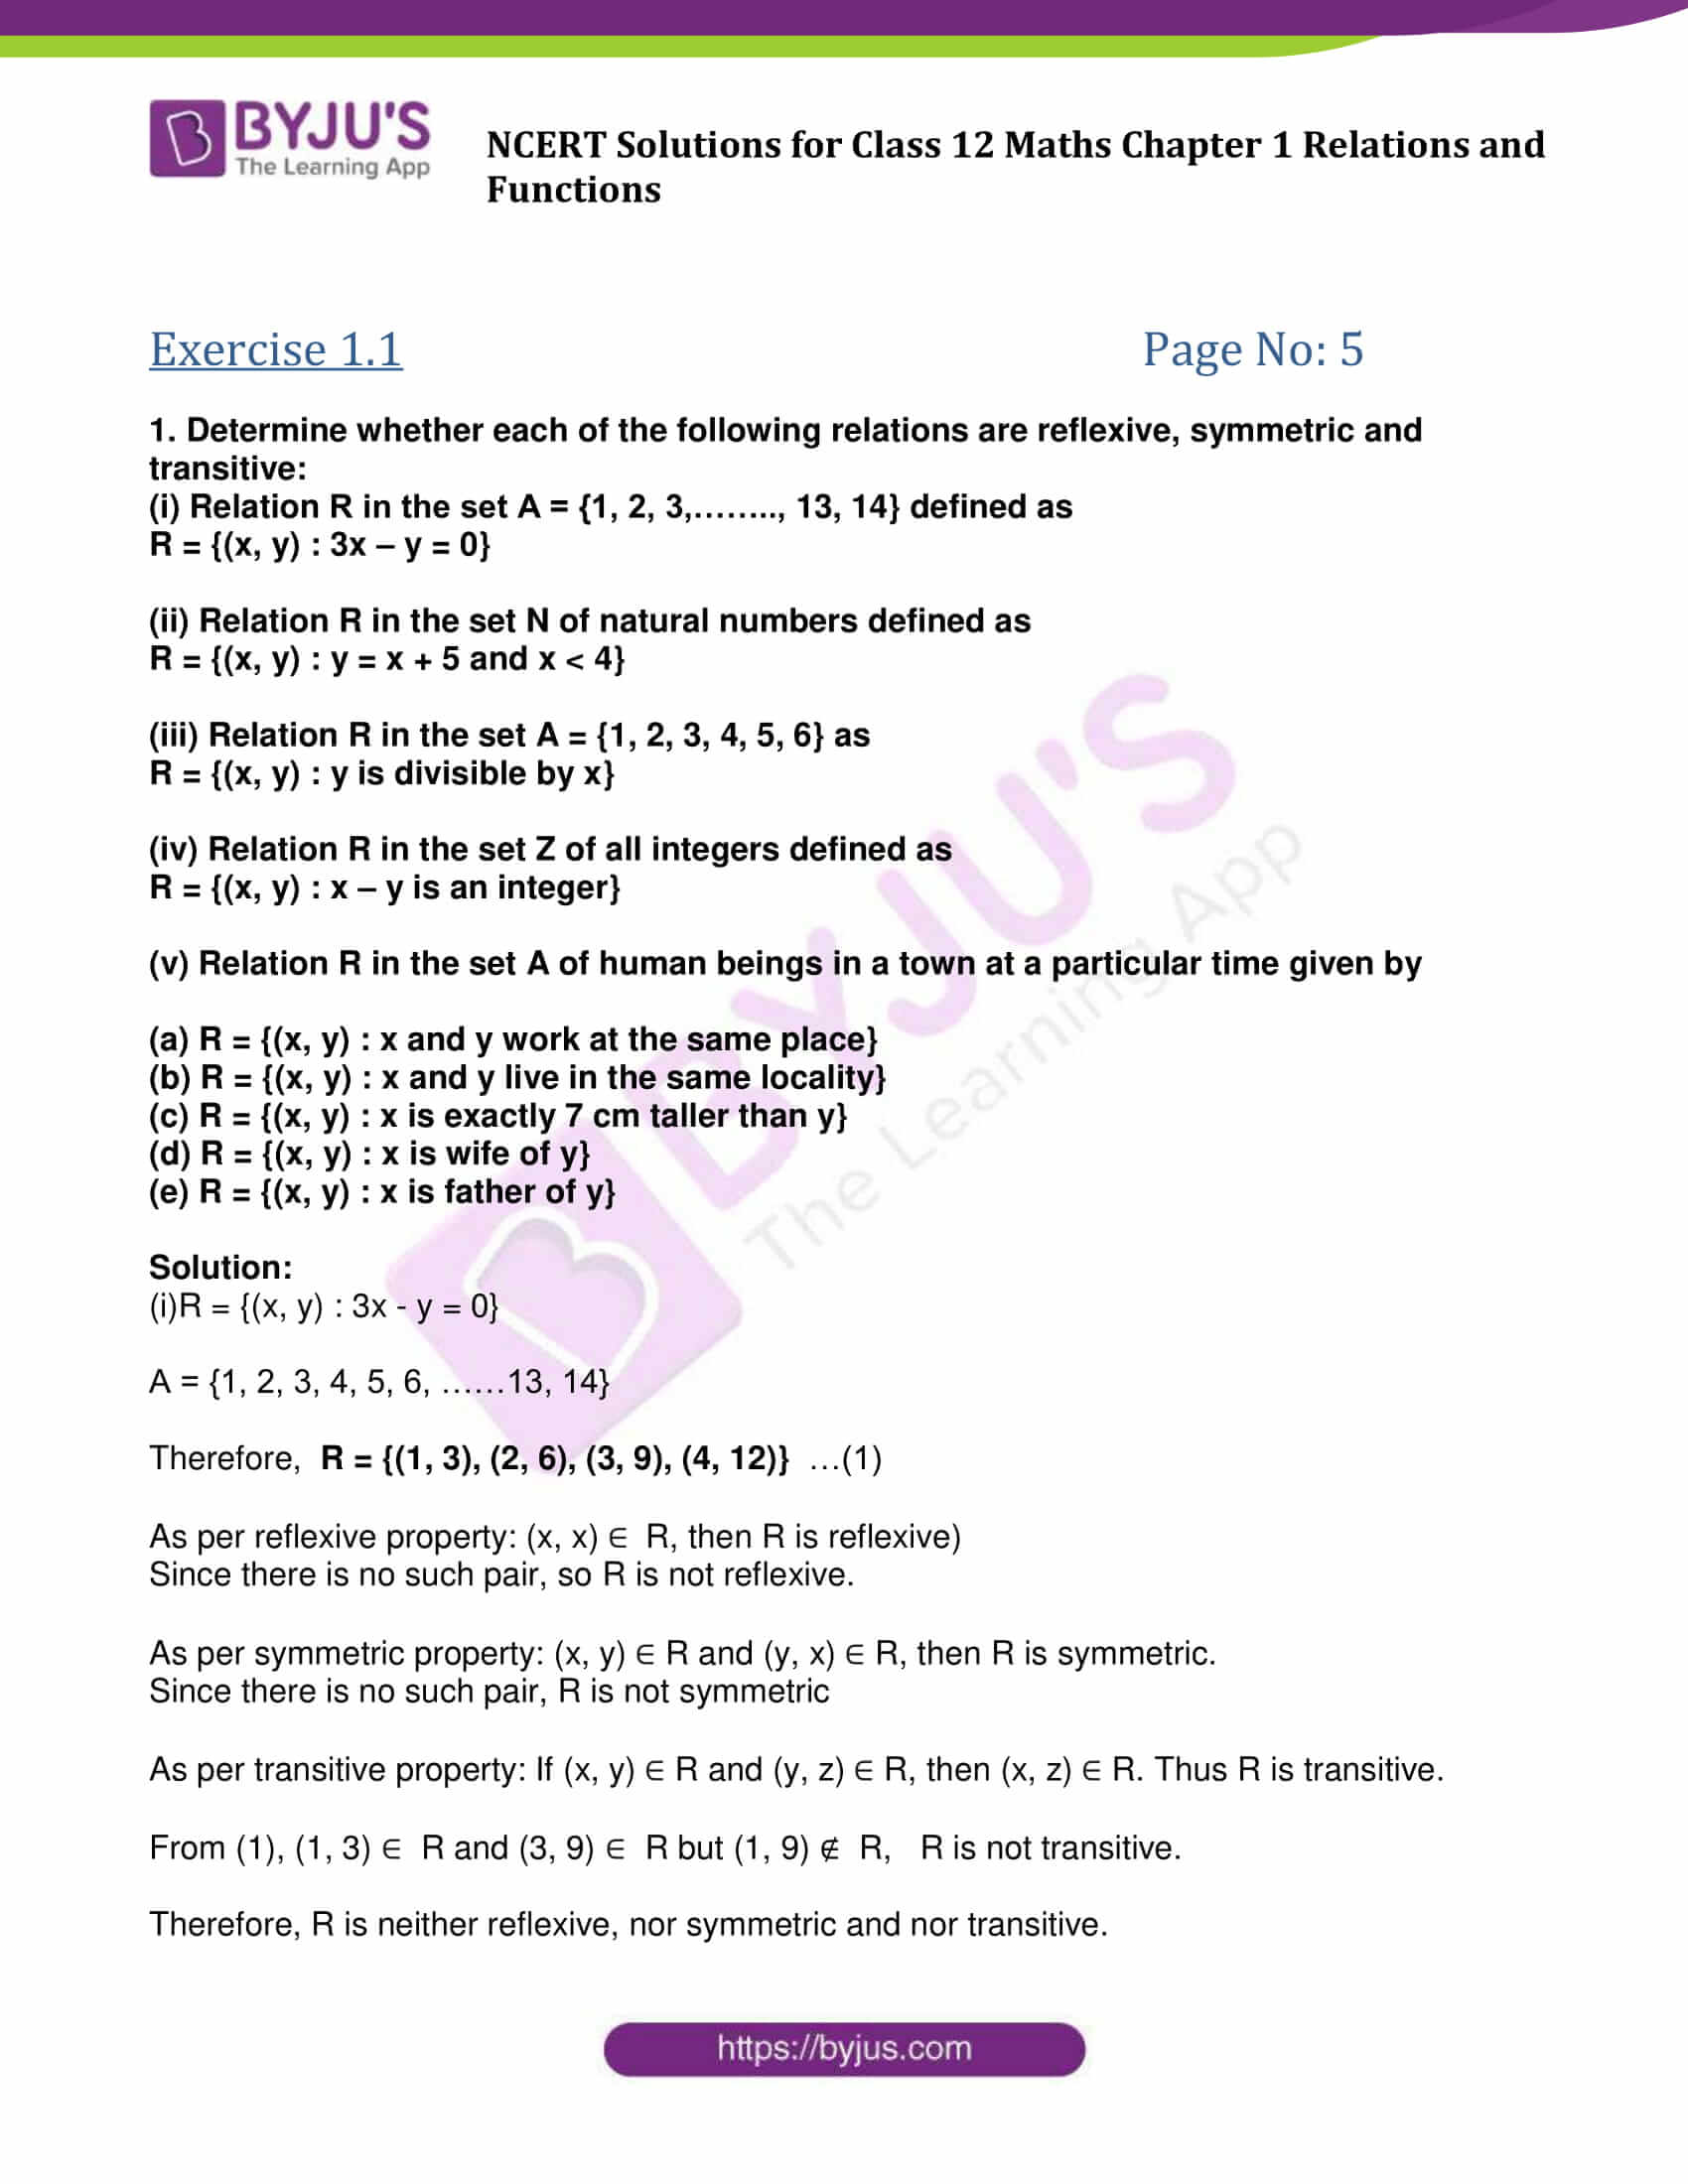 NCERT Solutions Class 12 Maths Chapter 1 Relations And